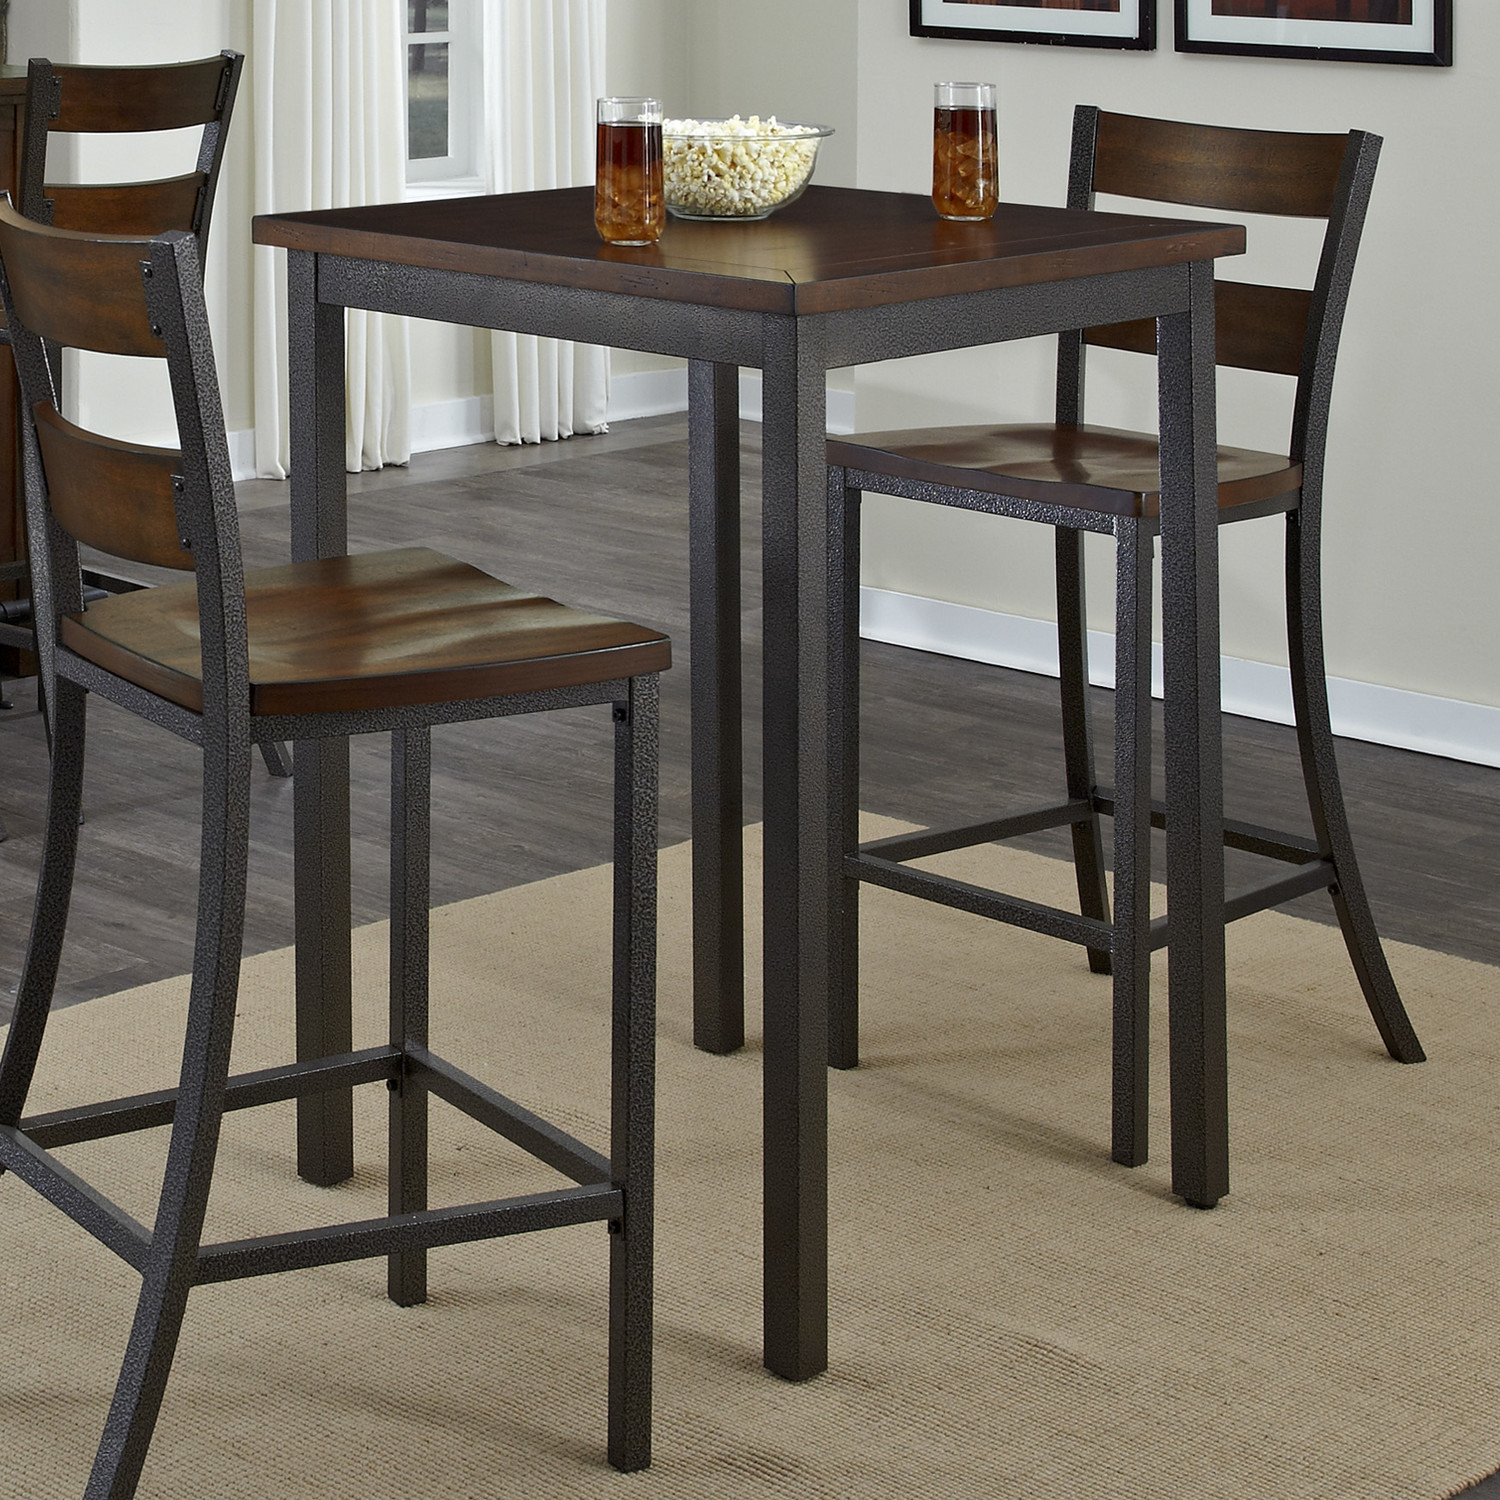 The Cabin Creek Bistro Table By Home Styles